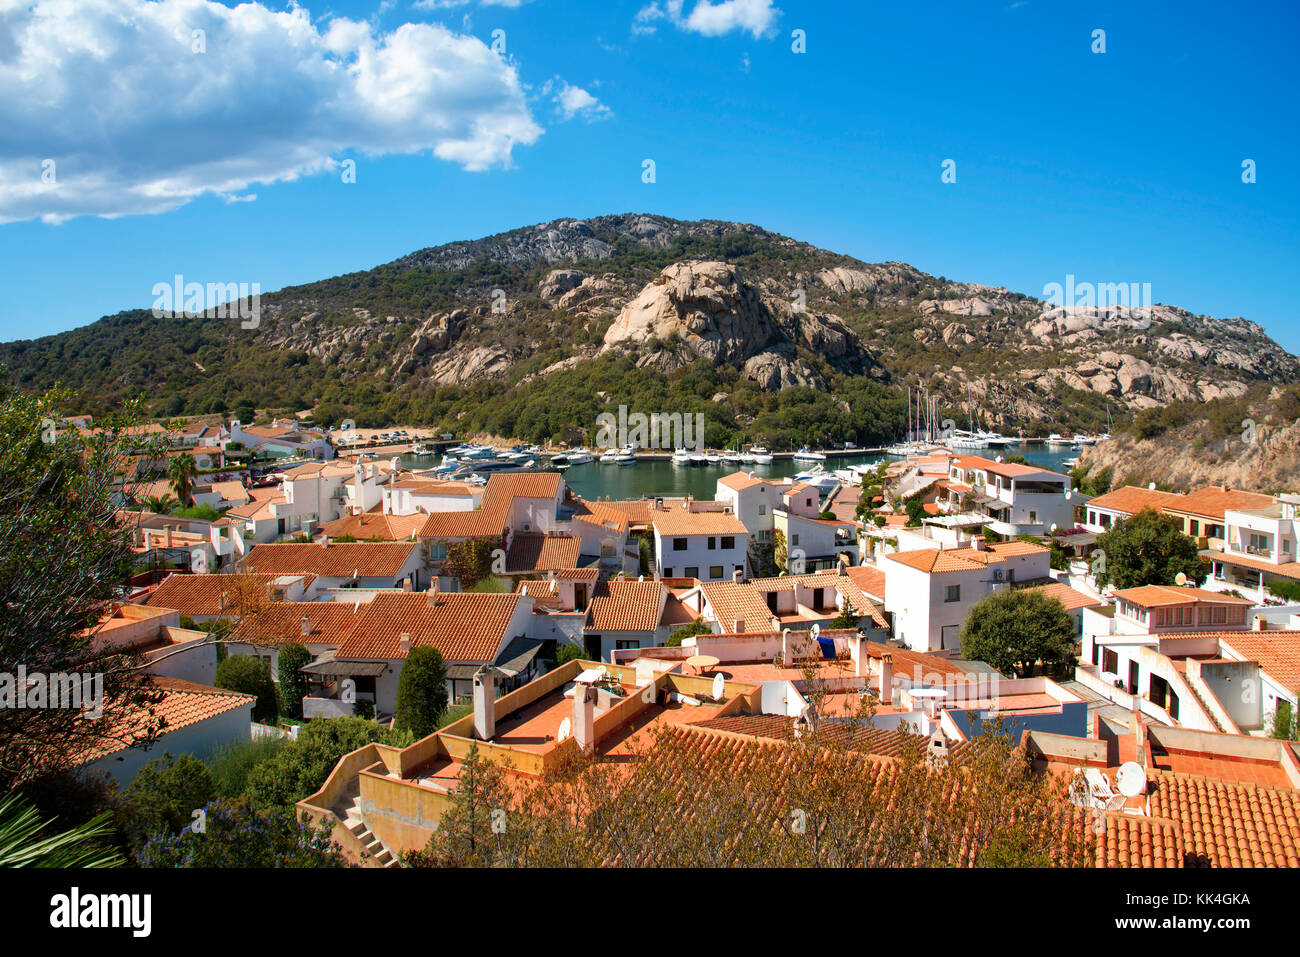 a panoramic view of Poltu Quatu, in the famous Costa Smeralda, Sardinia, Italy, with its marina in the background - Stock Image